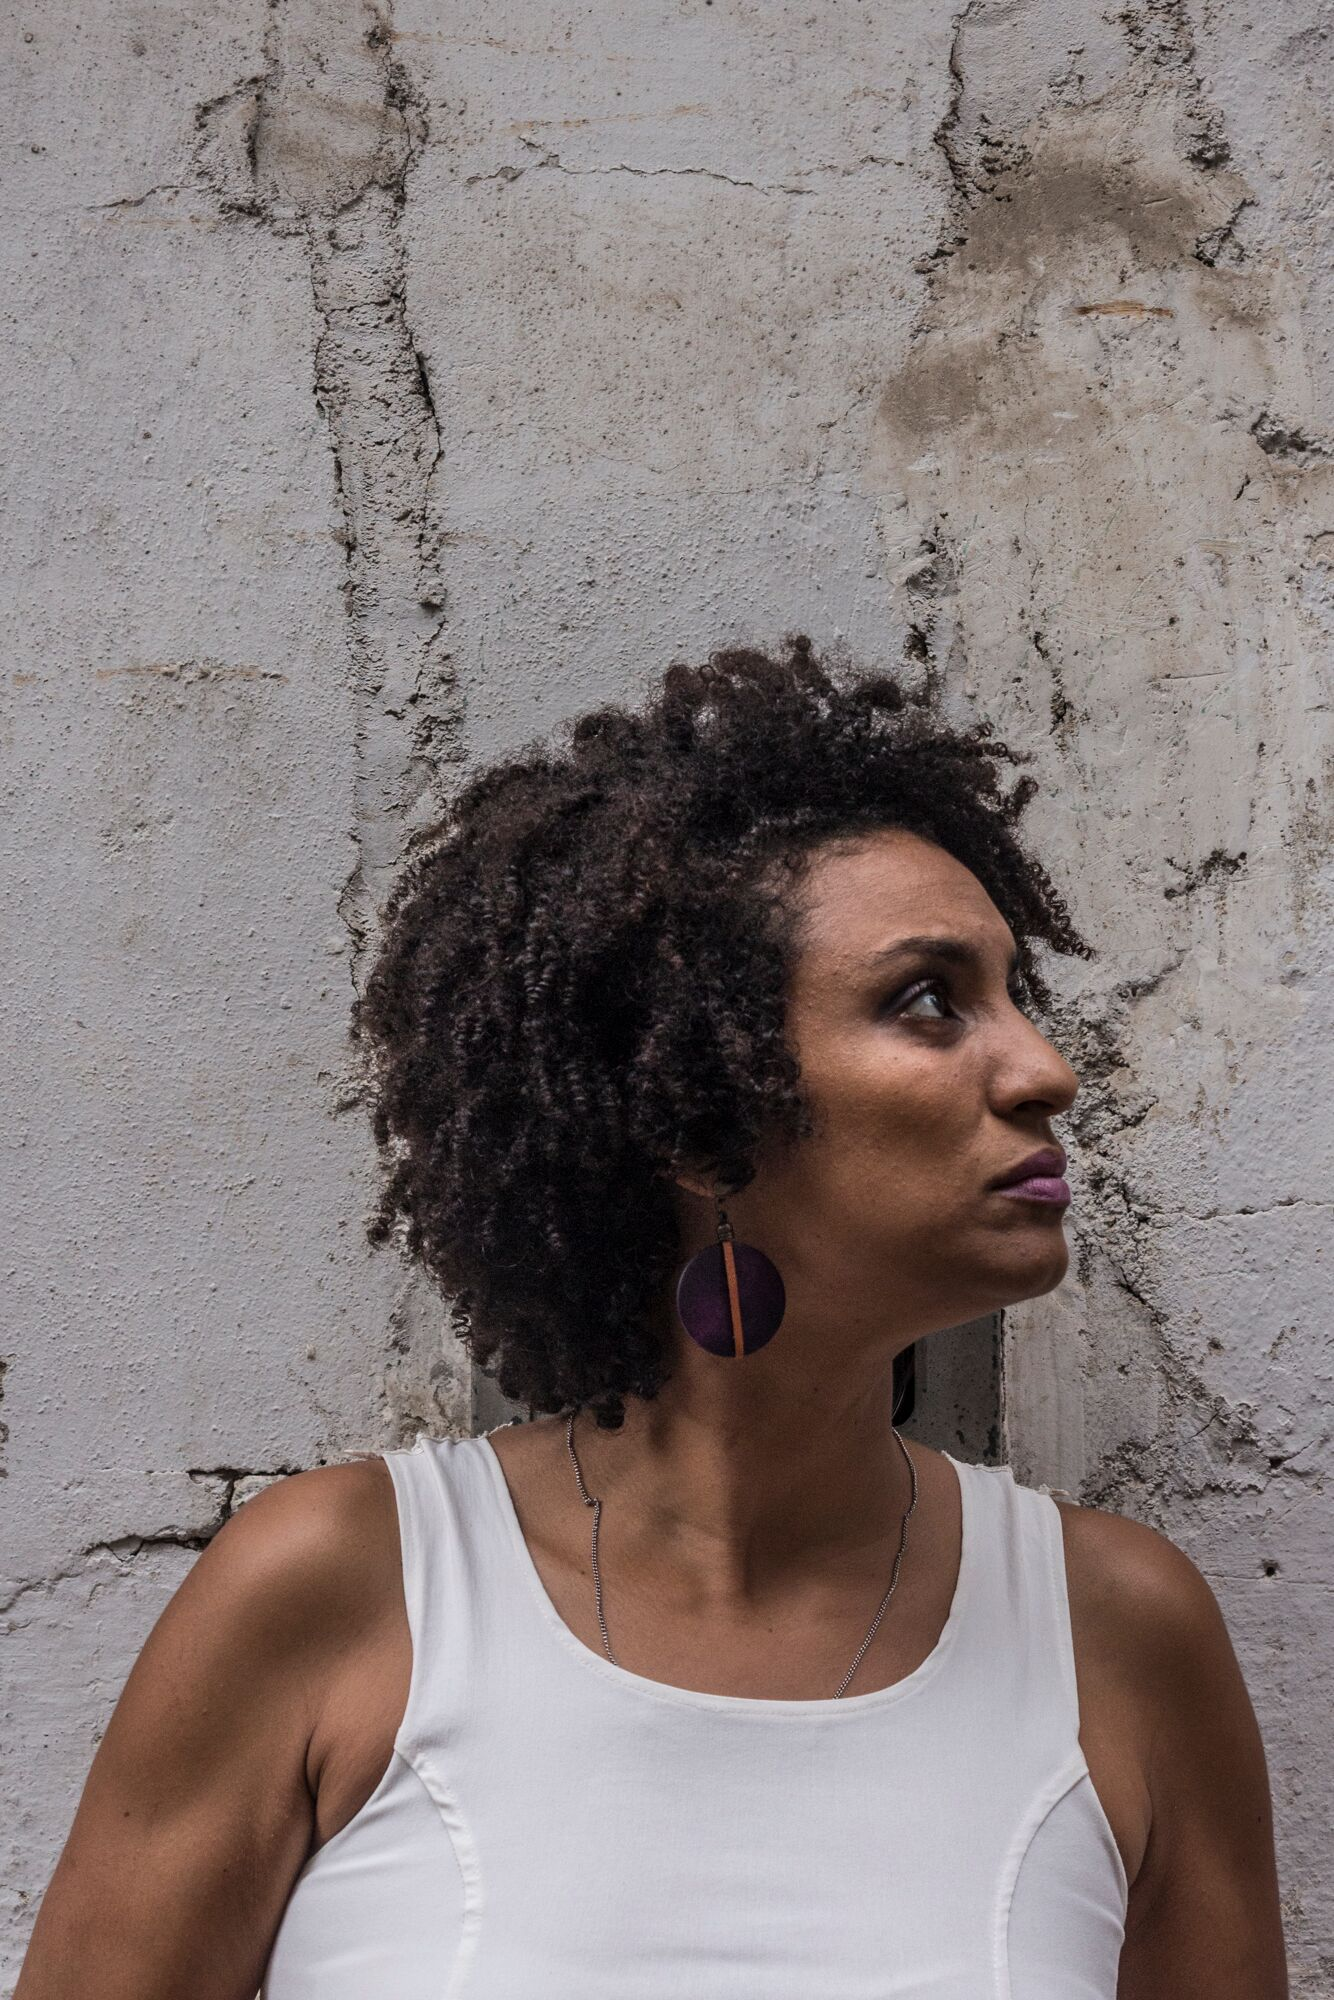 Remembering Marielle Franco, a black Brazilian trailblazer ...